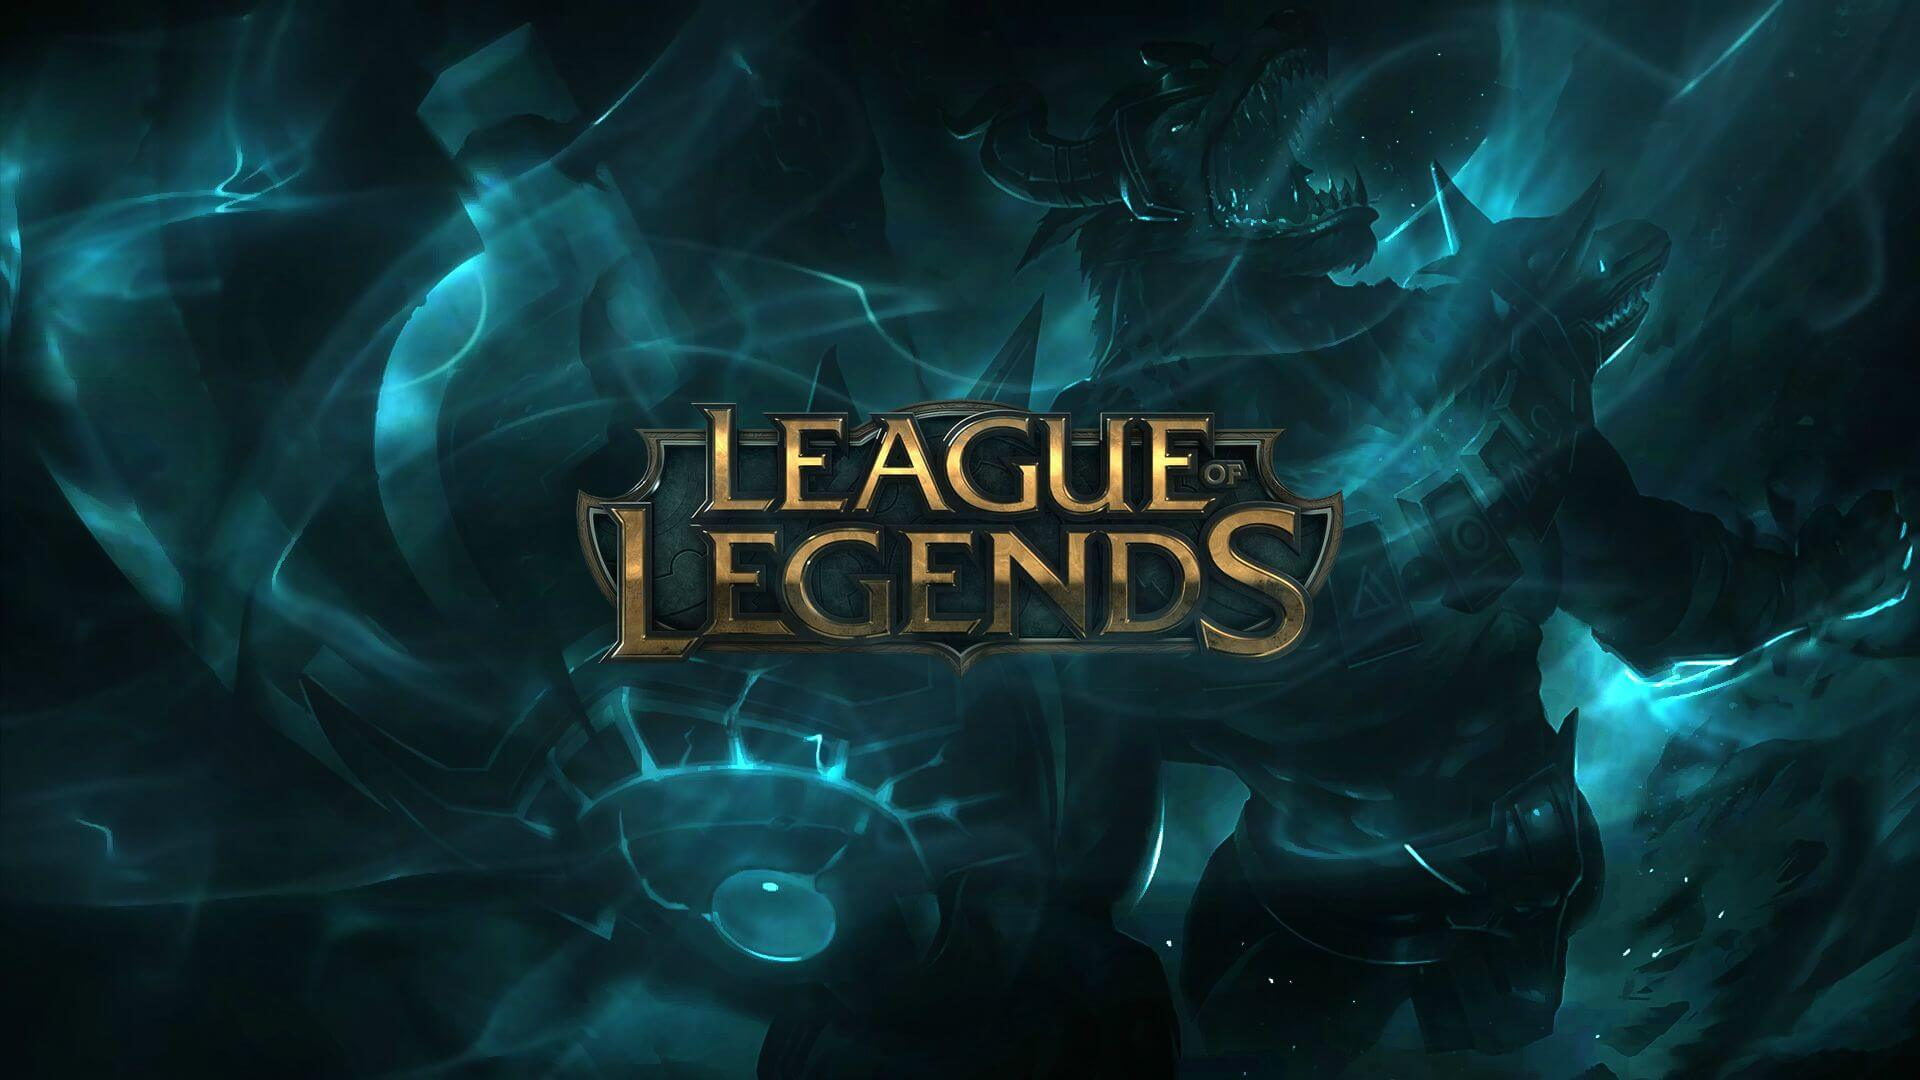 Moa Games Wallpaper Download League Of Legends Hd Wallpaper